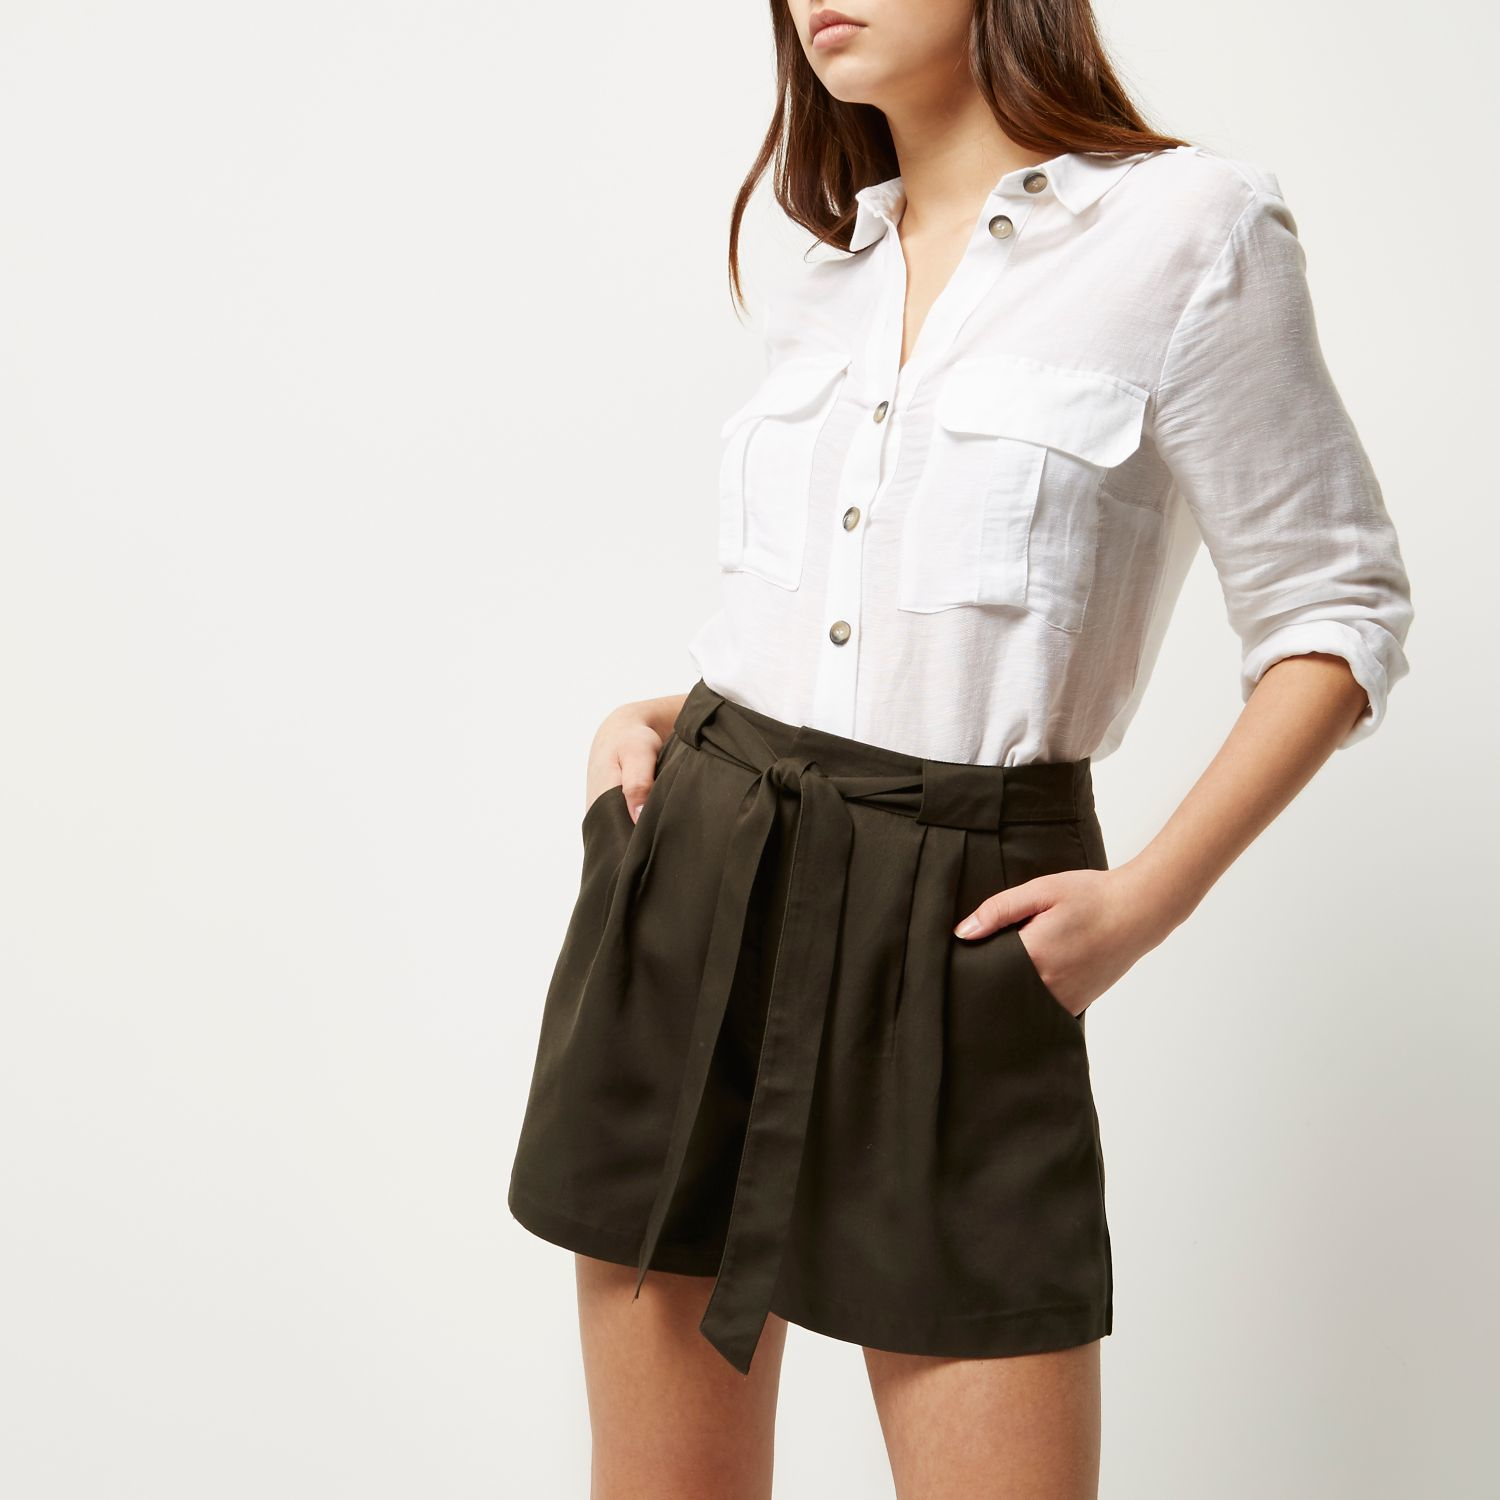 River island Khaki Tie High Waisted Shorts in Brown   Lyst